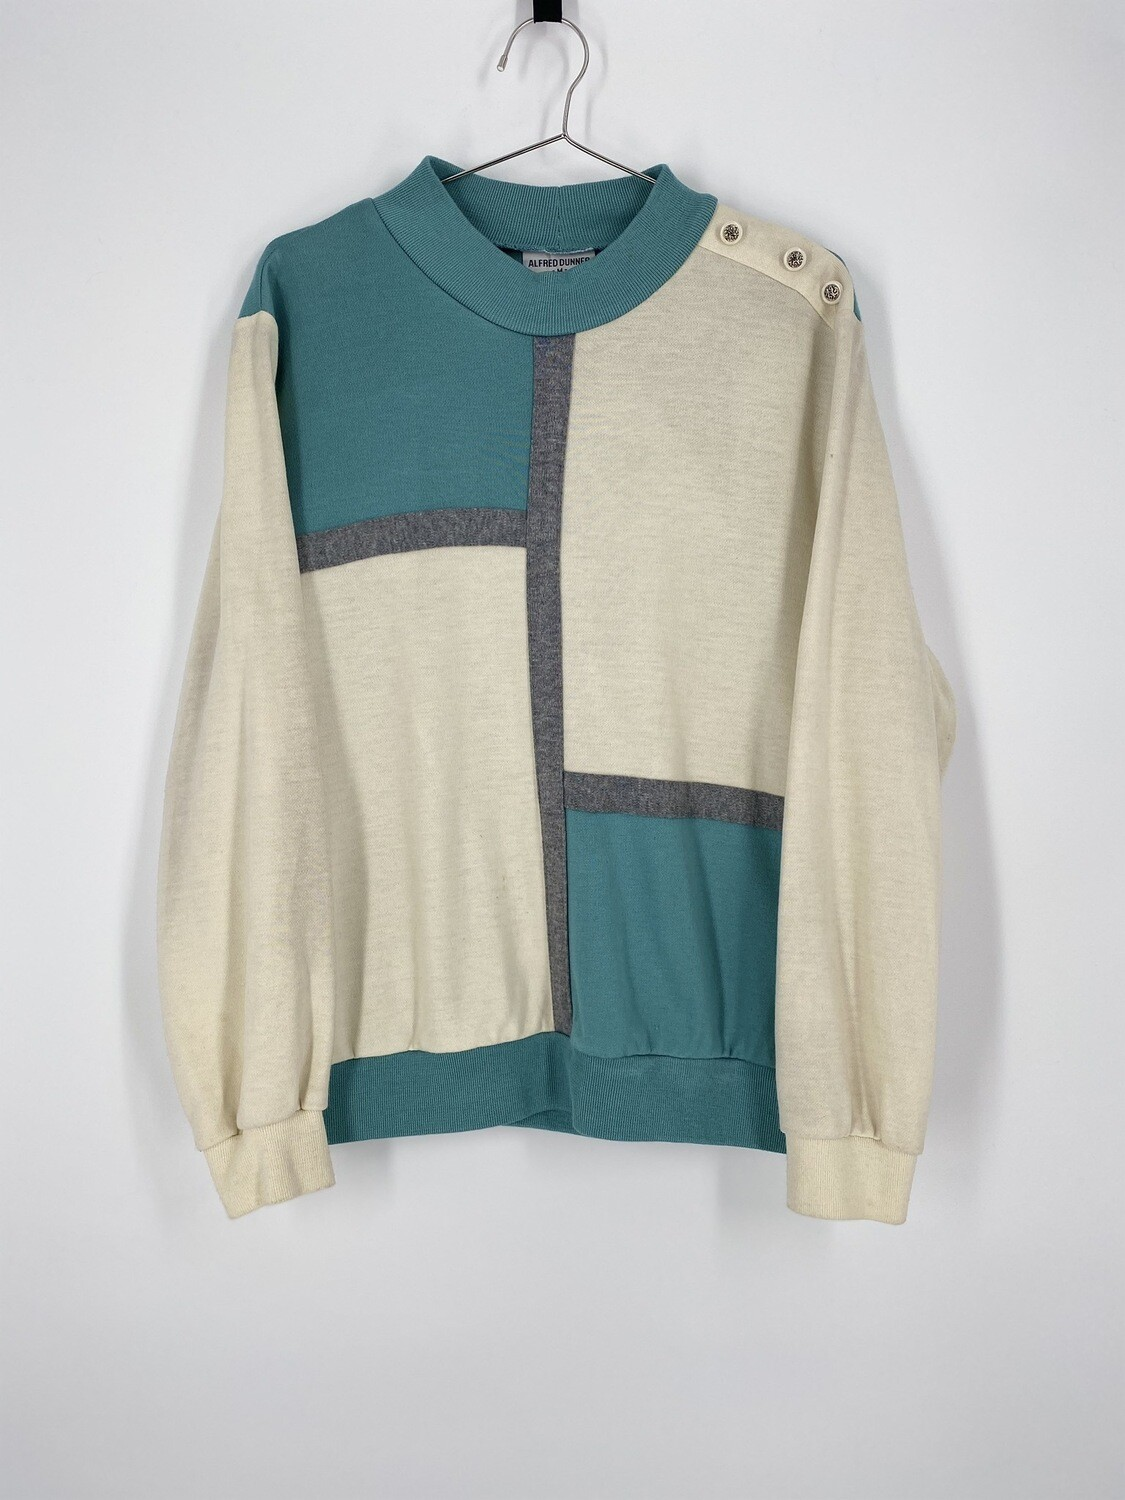 Alfred Dunner Color Blocked Sweater Size M